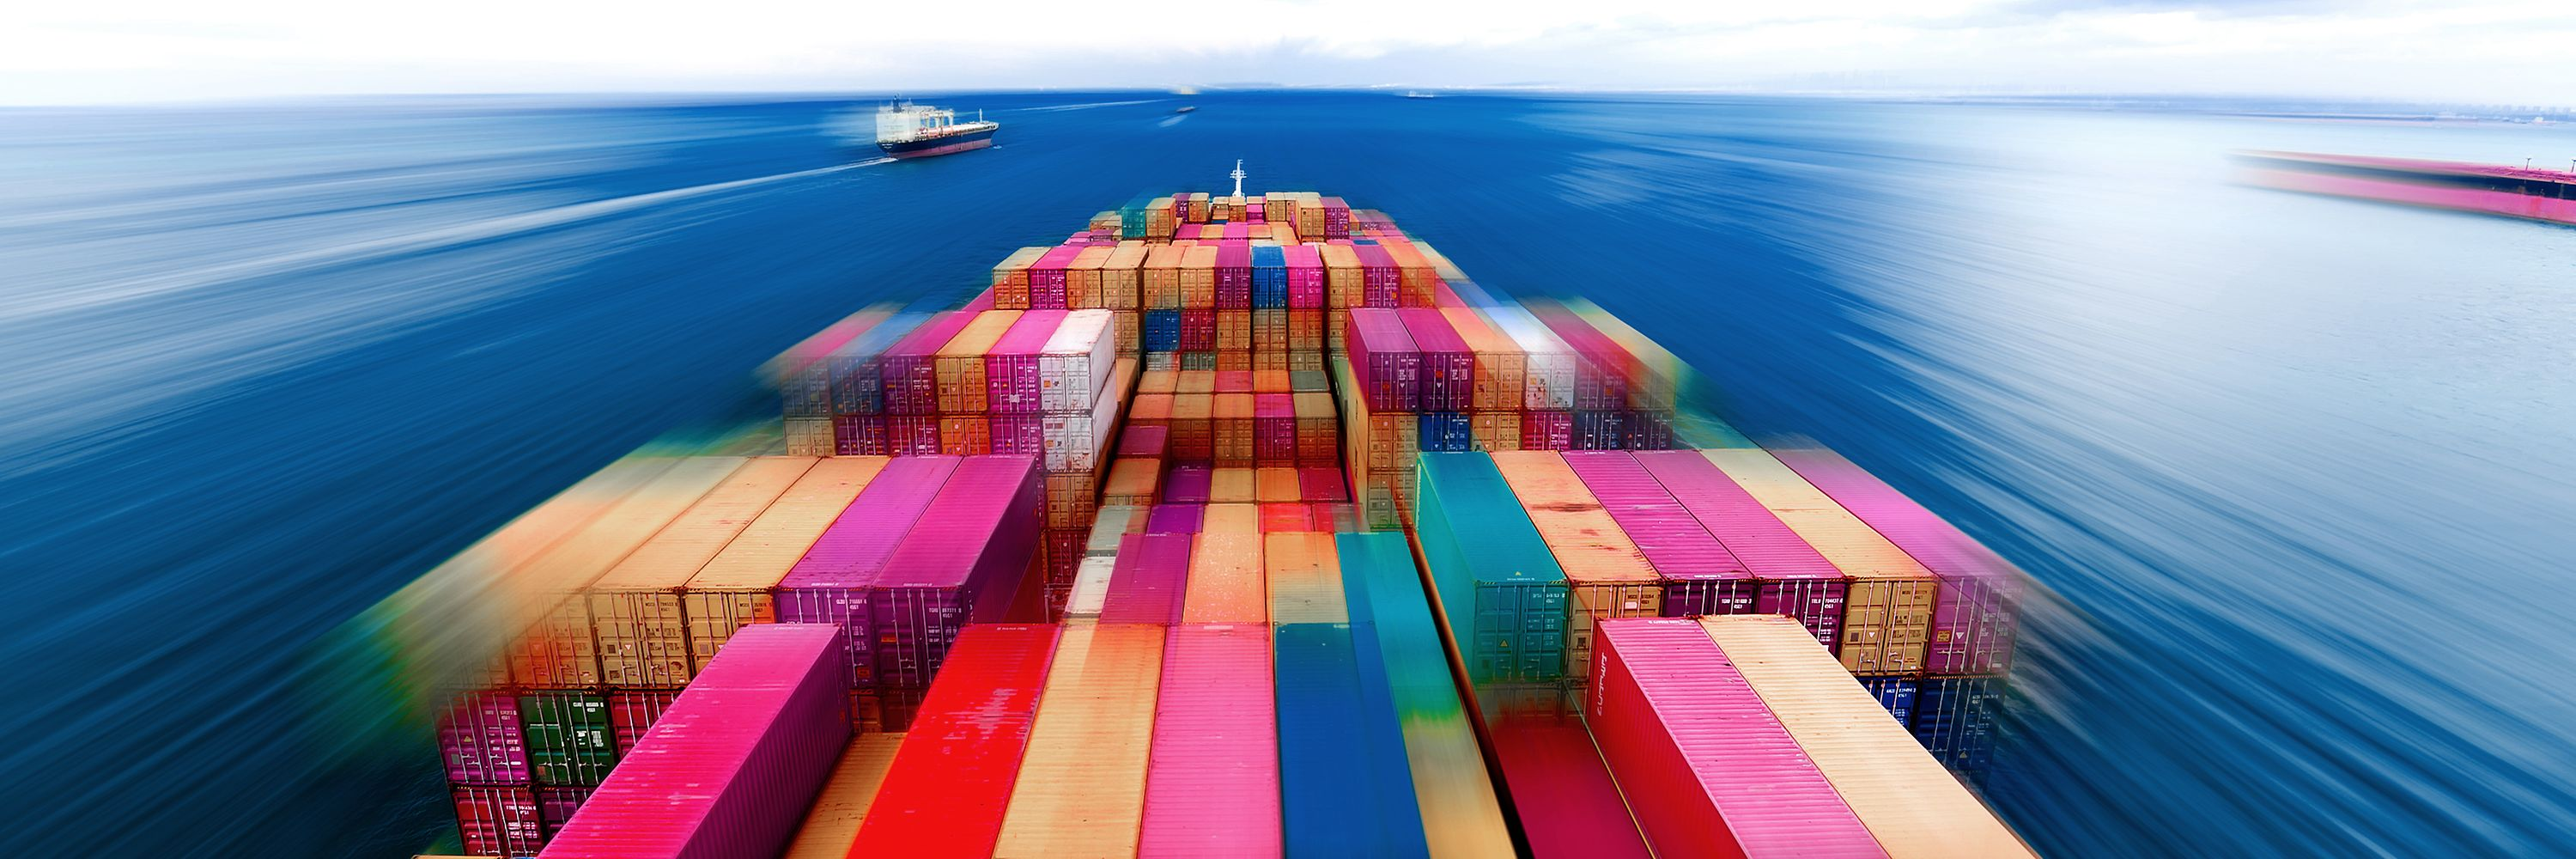 Image Logistics, Containership